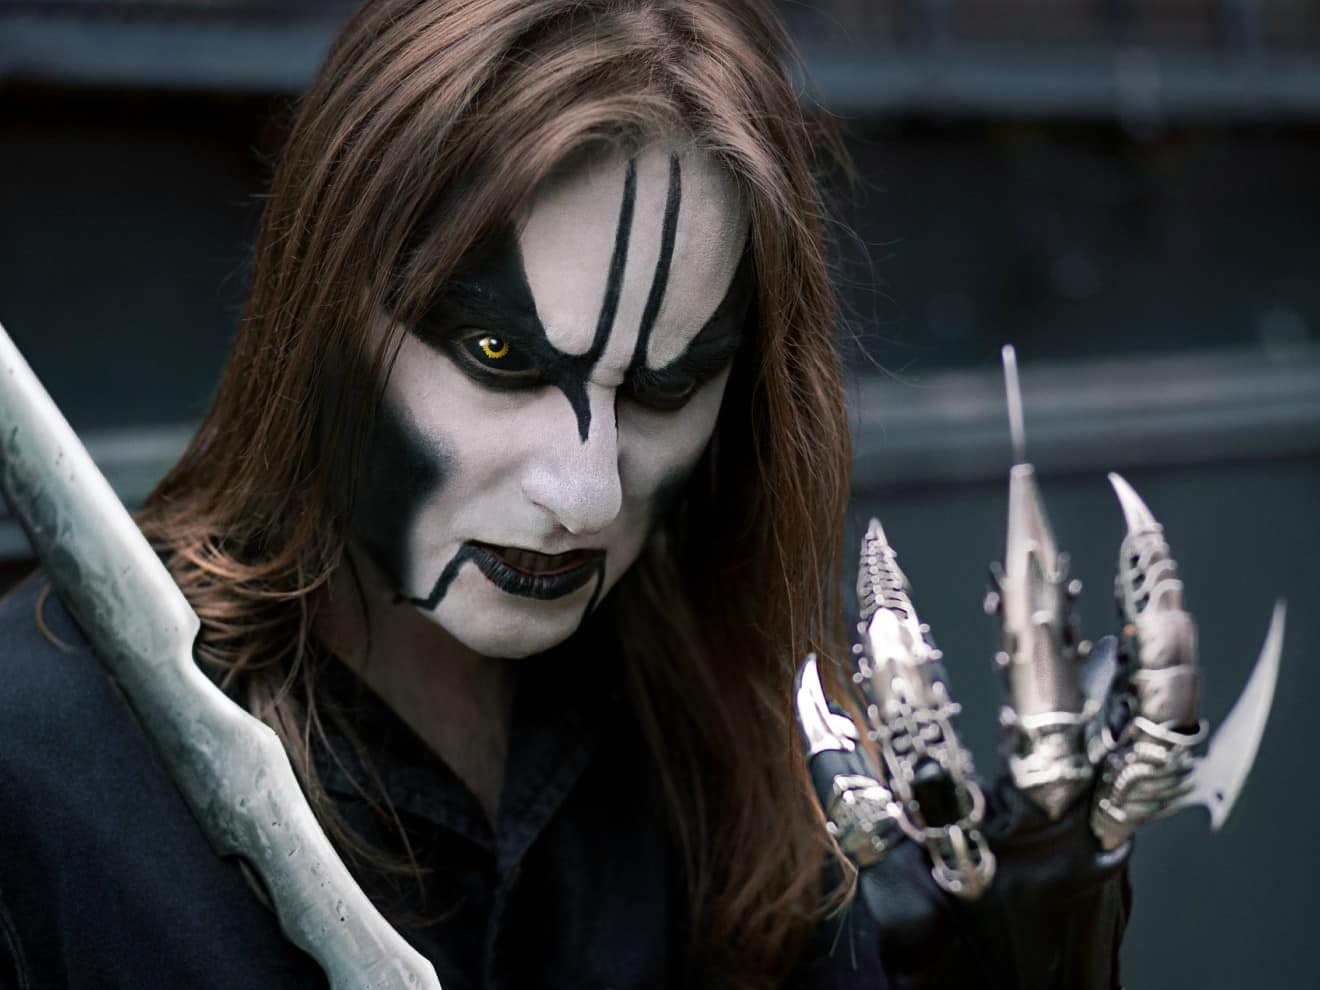 Black Metal Heritage and Crimes Against Culture